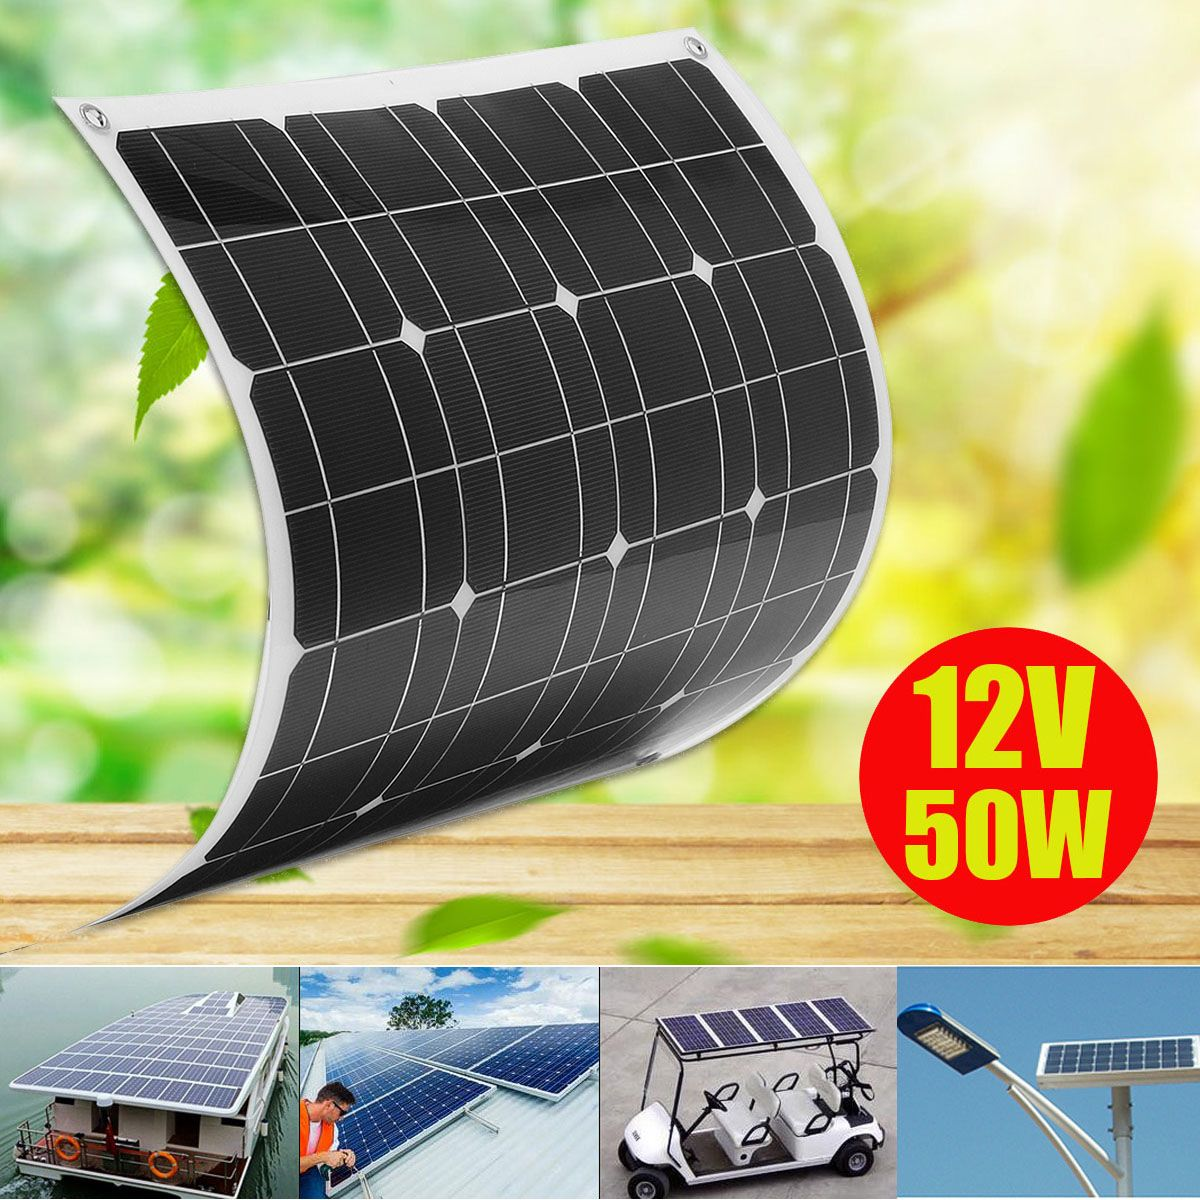 KINCO 12V/50W Semi-Flexible Solar Panel Monocrystalline Silicon Solar System Power Supply For Car Battery ChargerKINCO 12V/50W Semi-Flexible Solar Panel Monocrystalline Silicon Solar System Power Supply For Car Battery Charger